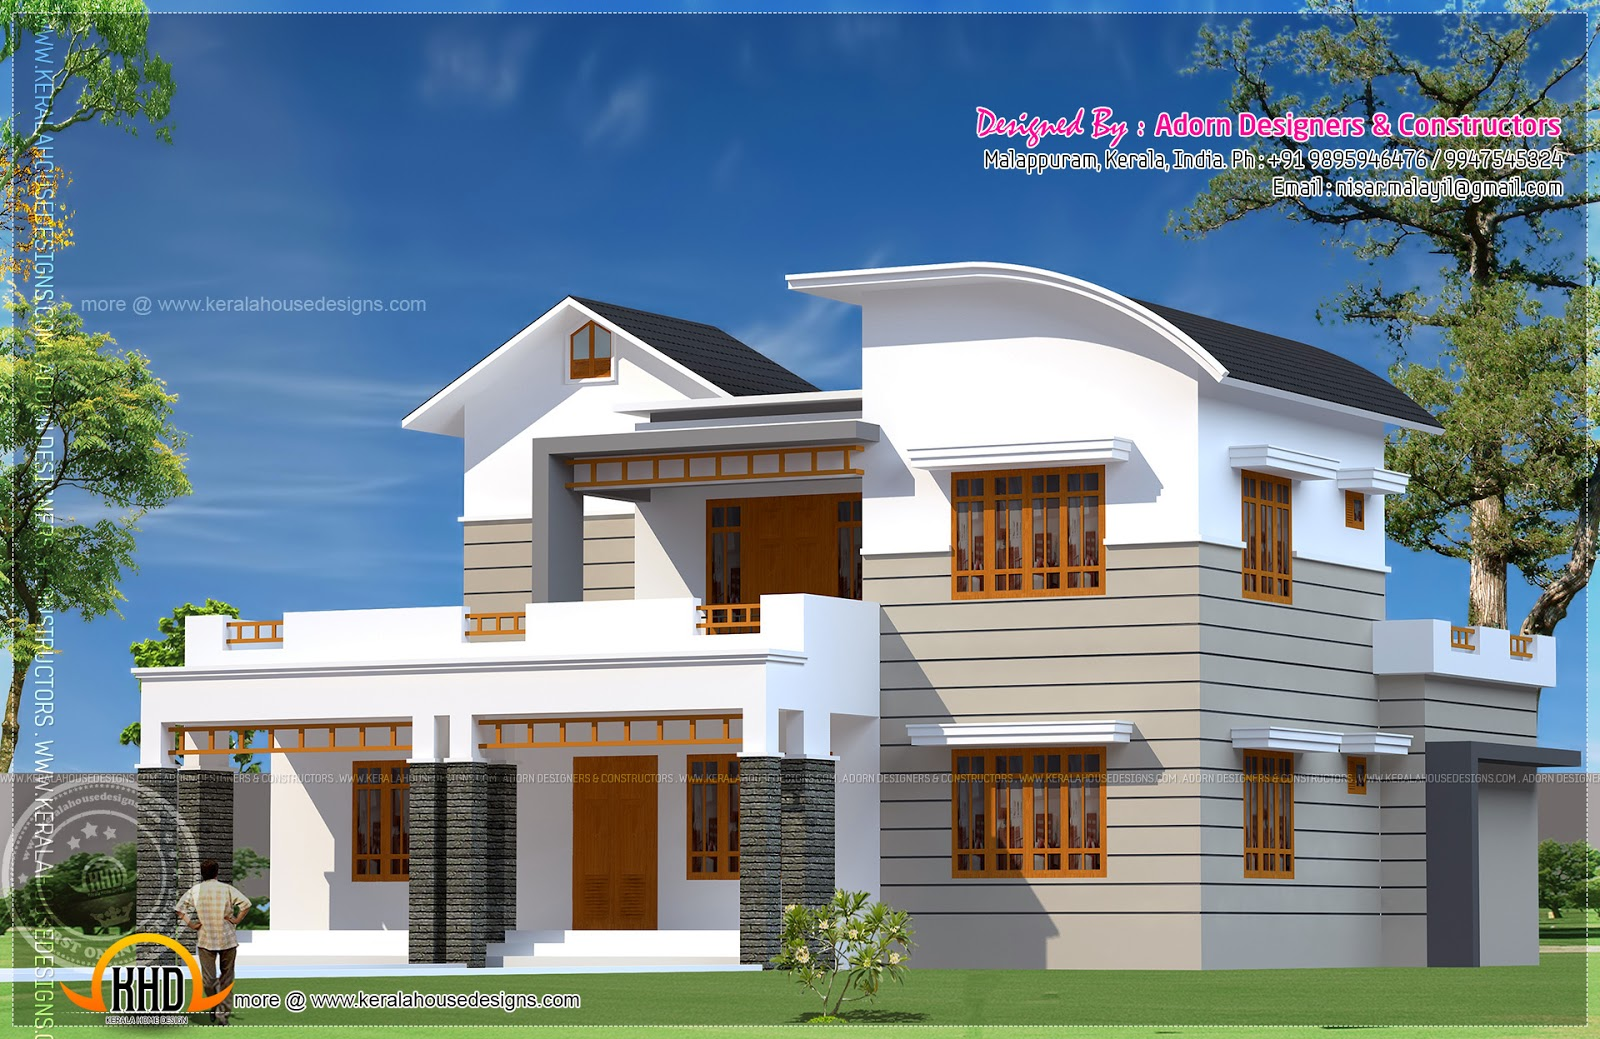 5 bedroom house exterior kerala home design and floor plans for 5 bedroom home designs